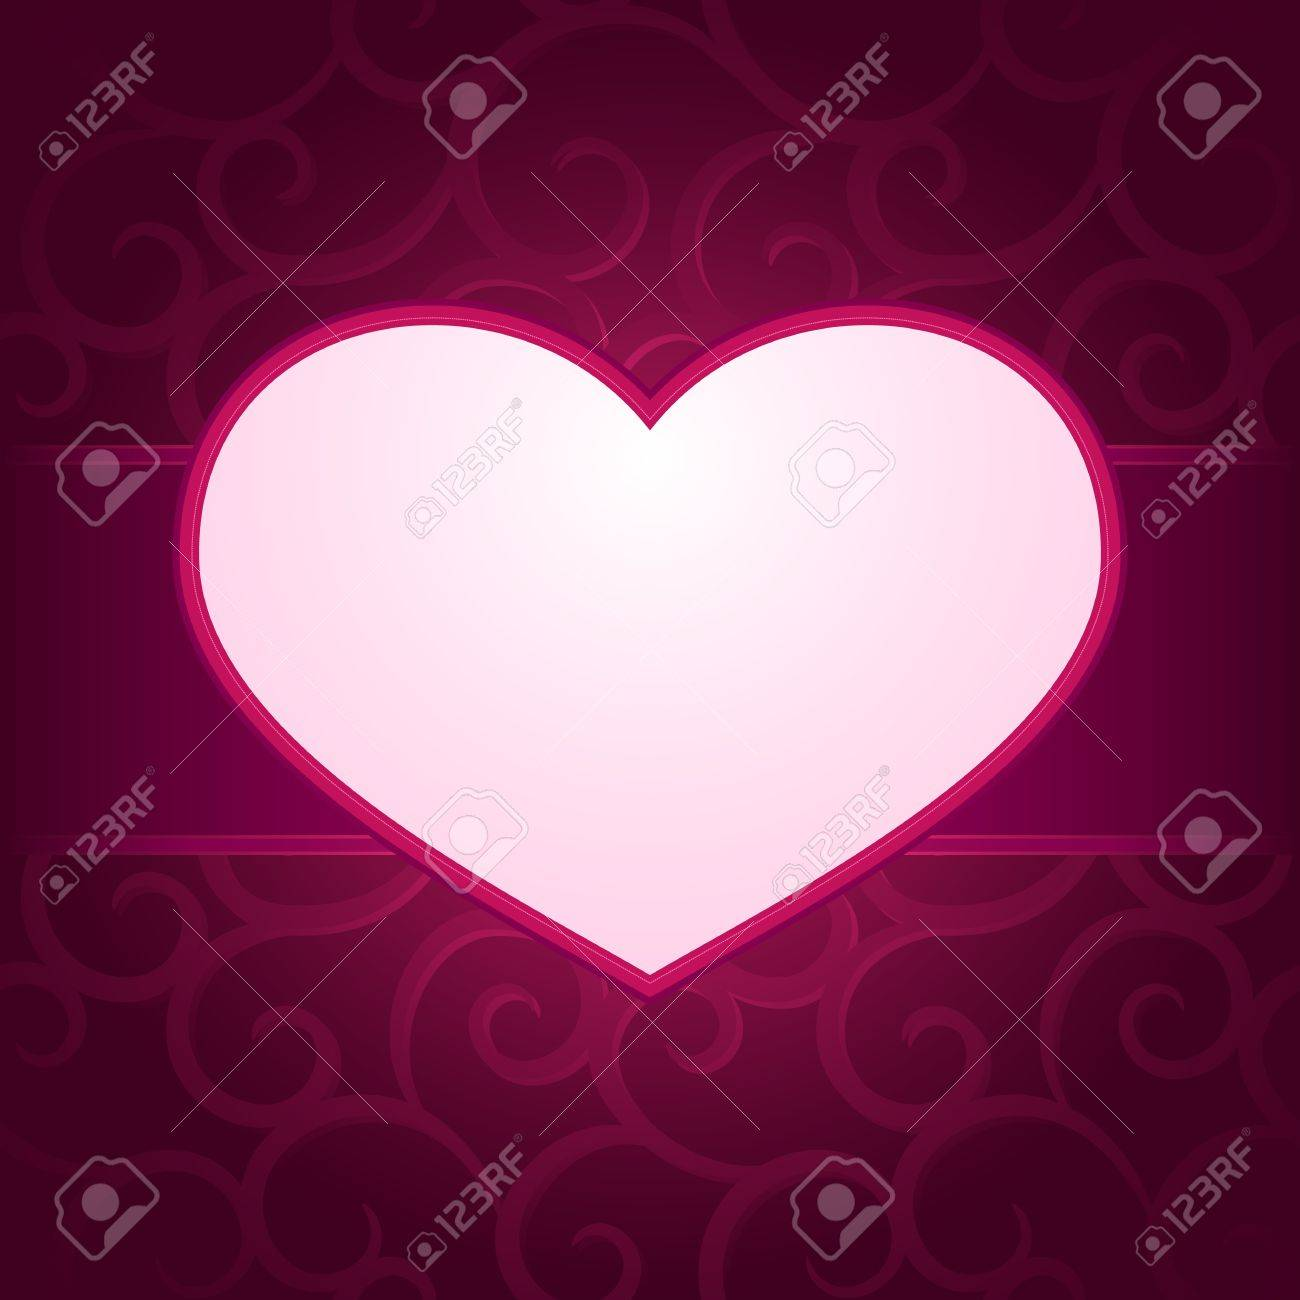 image for HEART